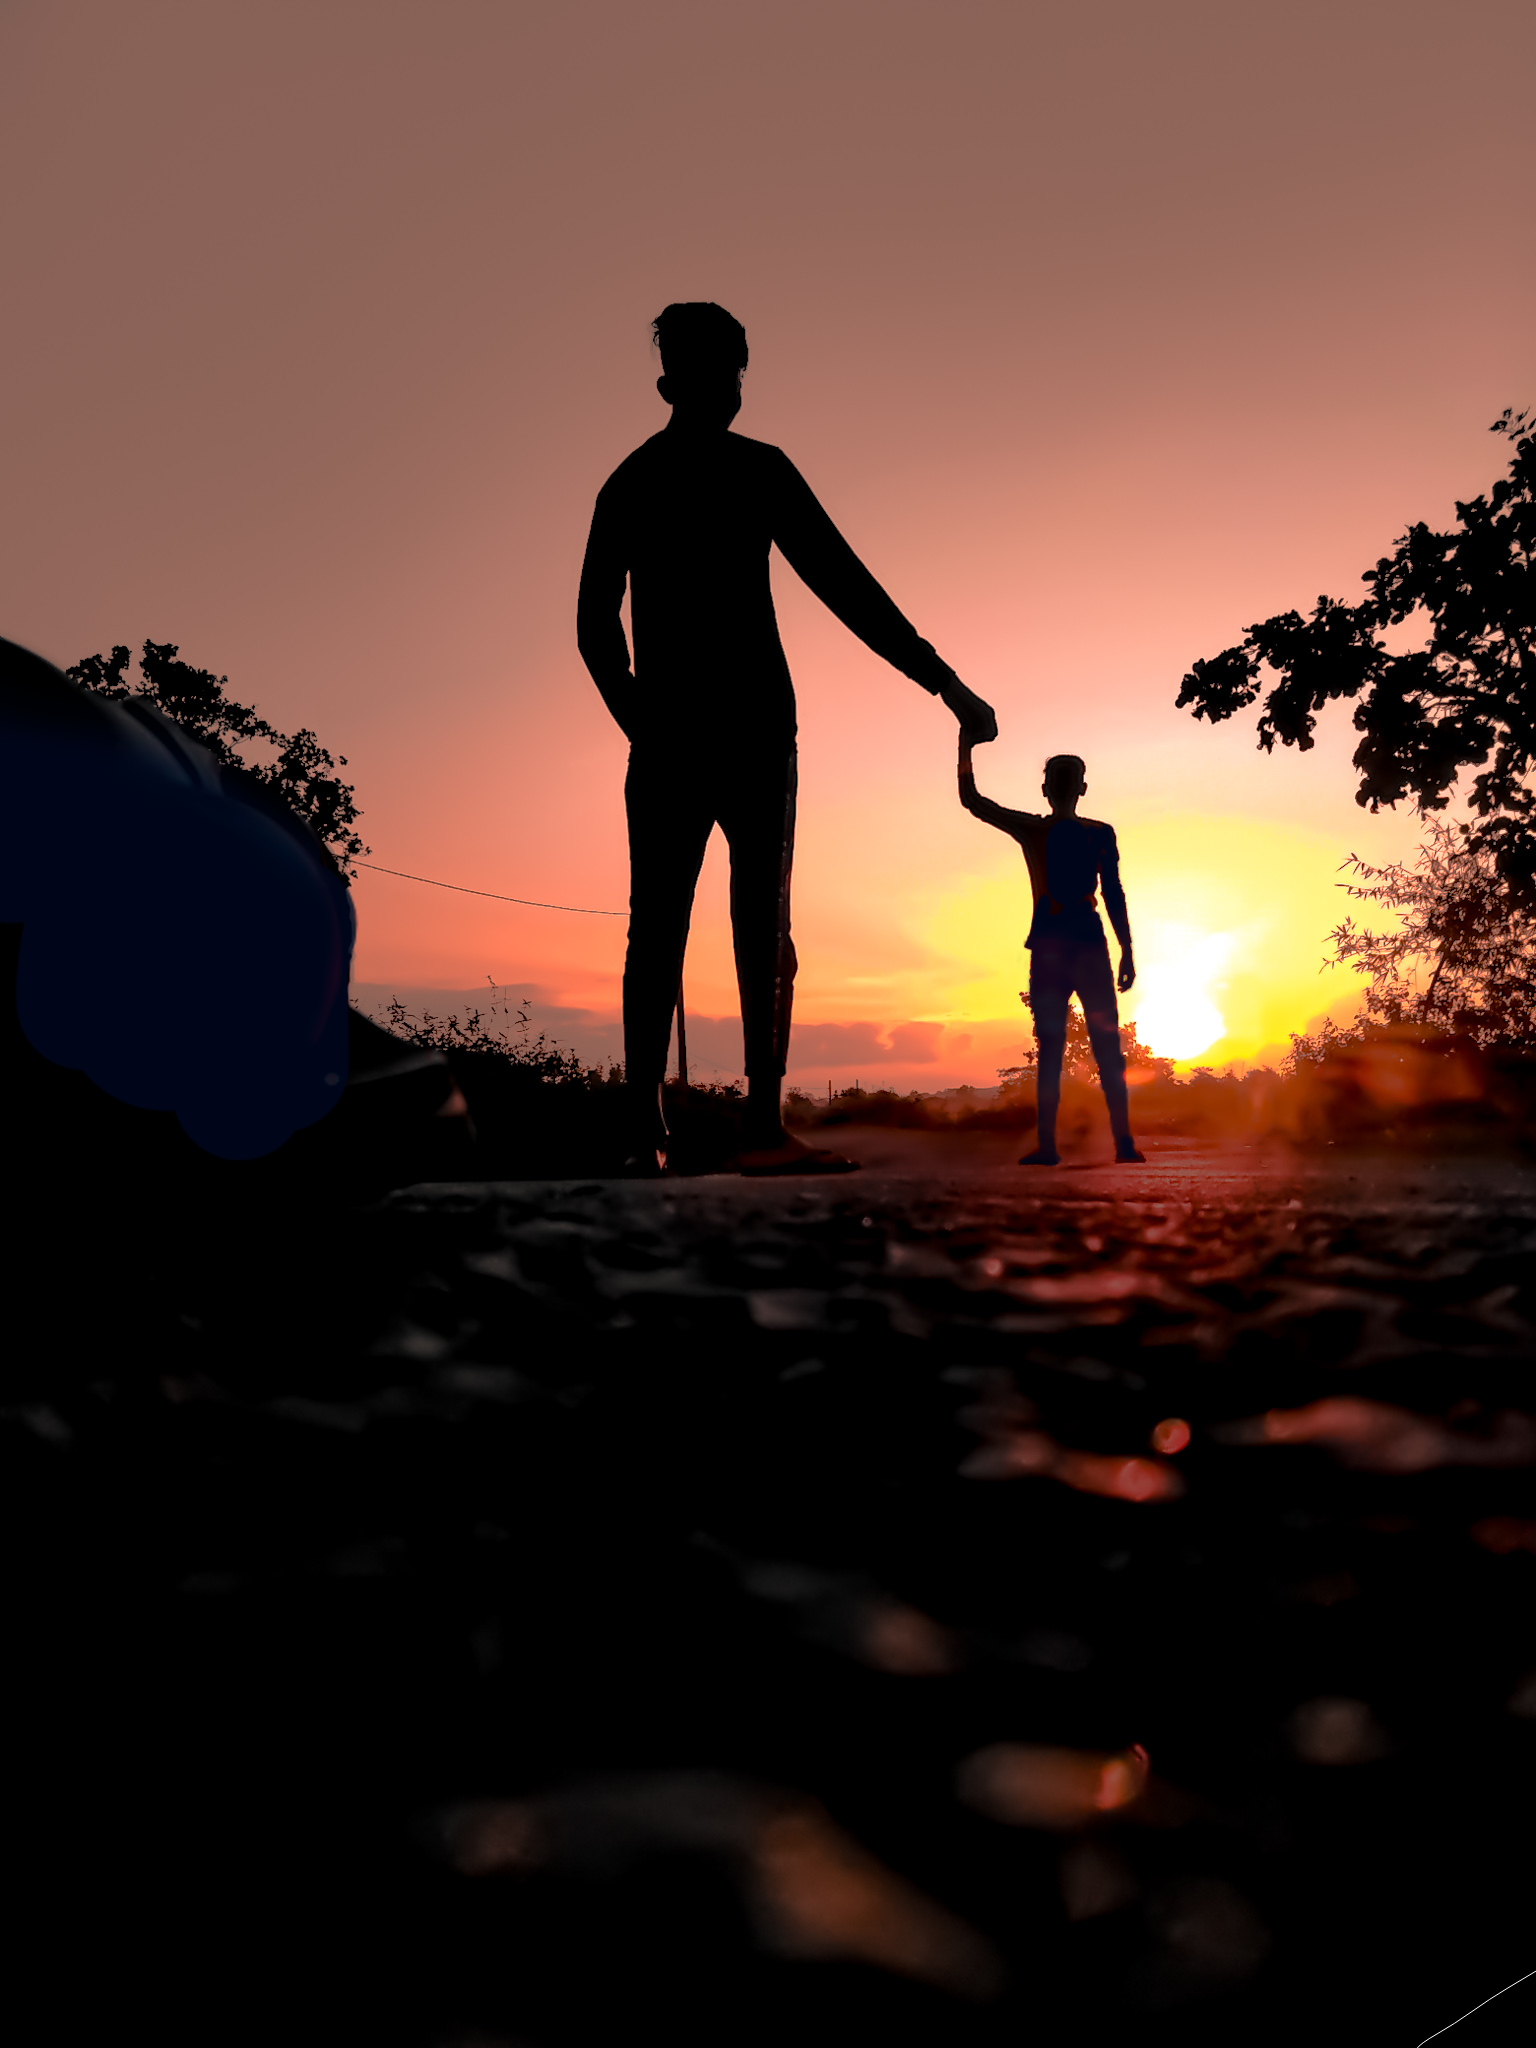 Boy with little boy in Silhouette